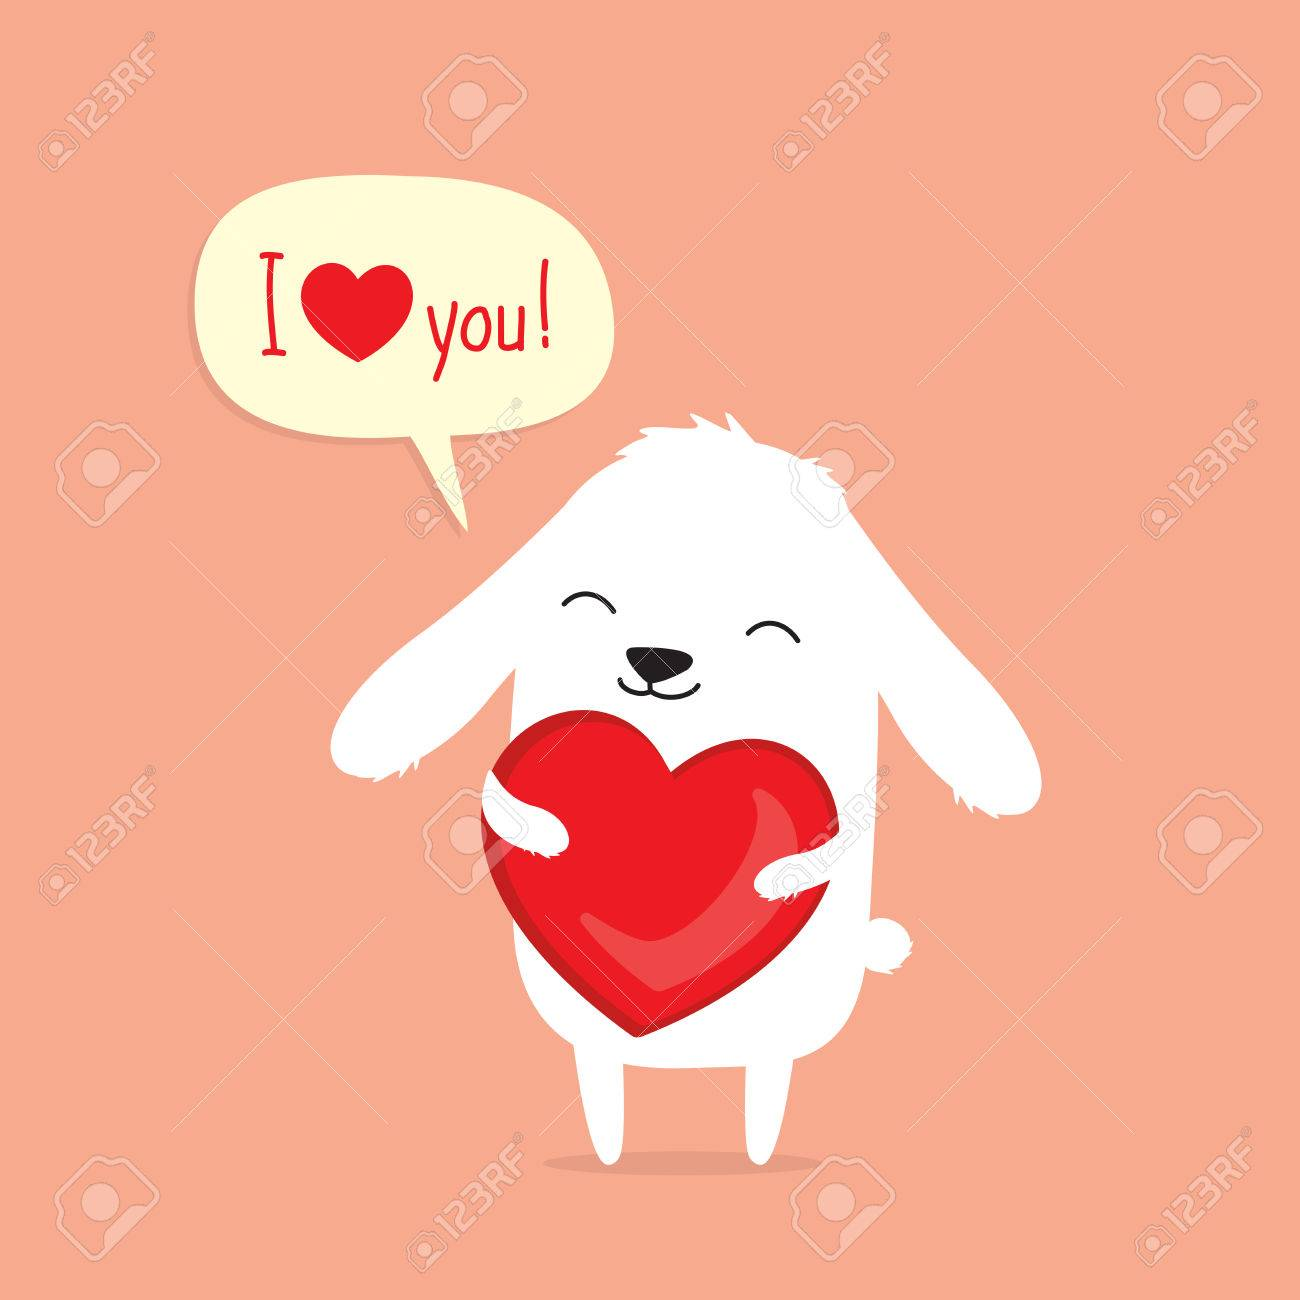 valentines day card with cute cartoon bunny rabbit holding heart valentines saying valentines saying